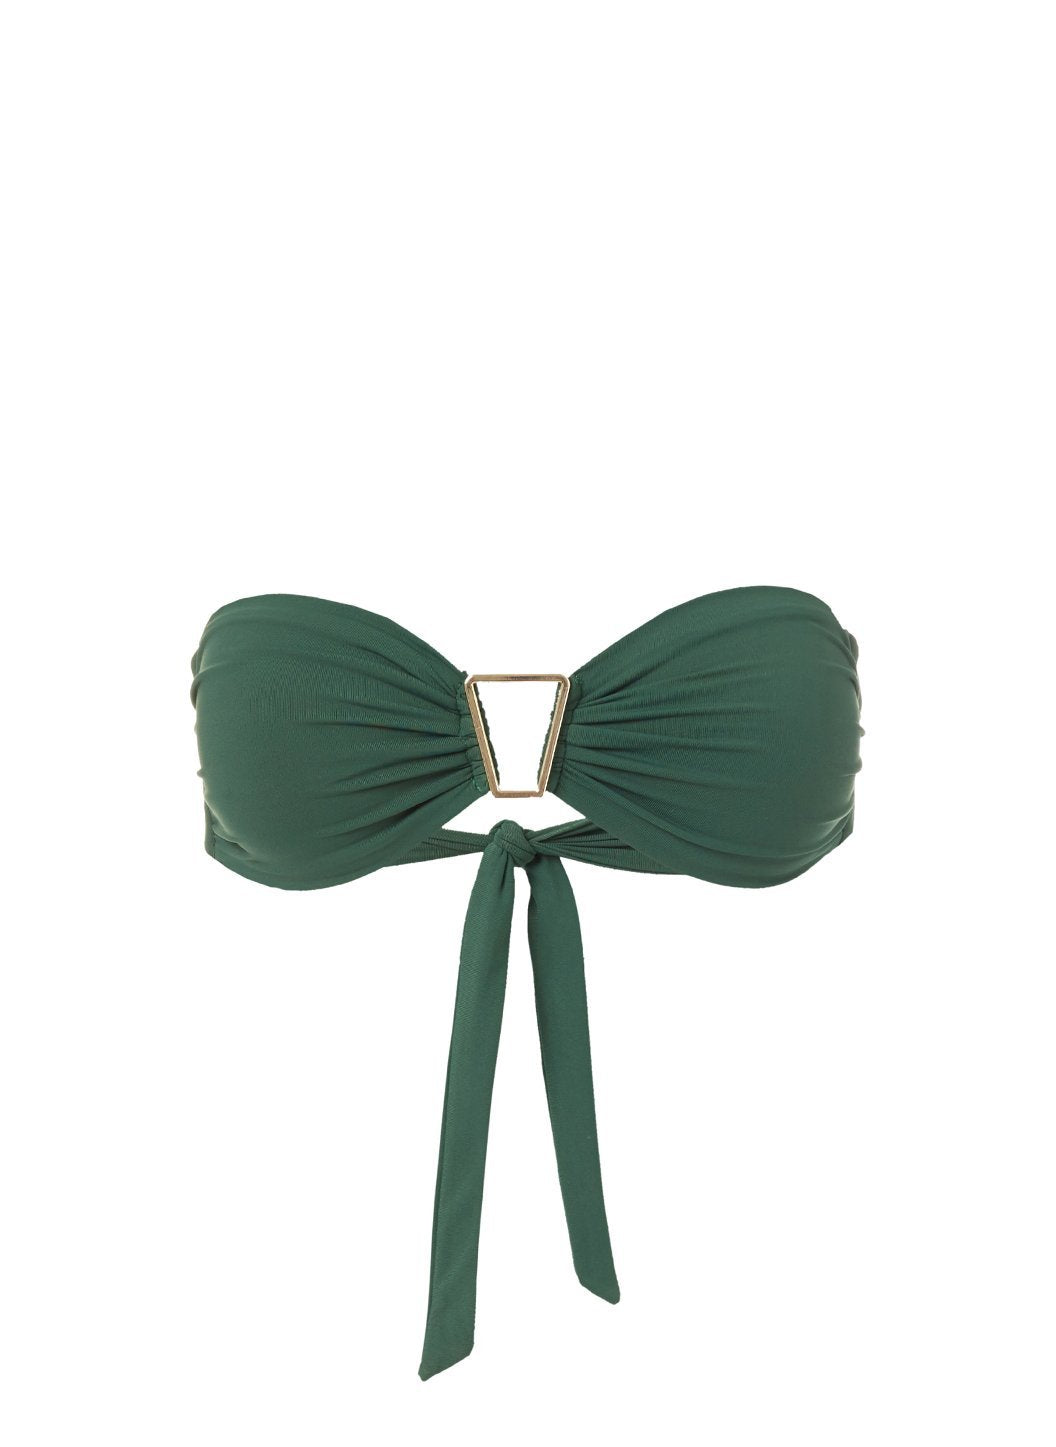 Barcelona Forest Bandeau Triangle Trim Bikini Top